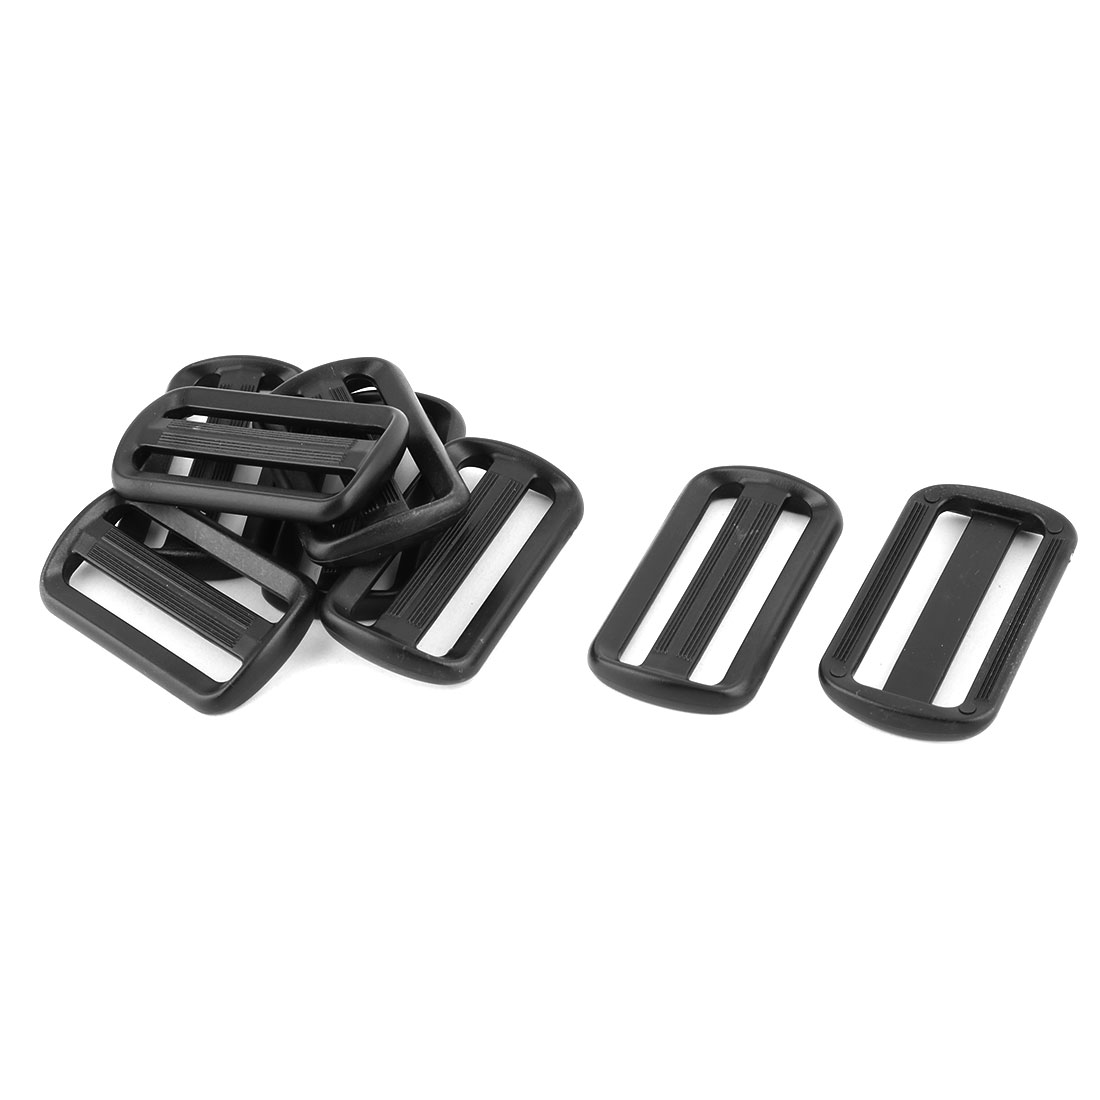 Outdoor Travel Plastic Adjustive Bag Backpack Strap Belt Tri Glide Buckle Fastener Black 8pcs